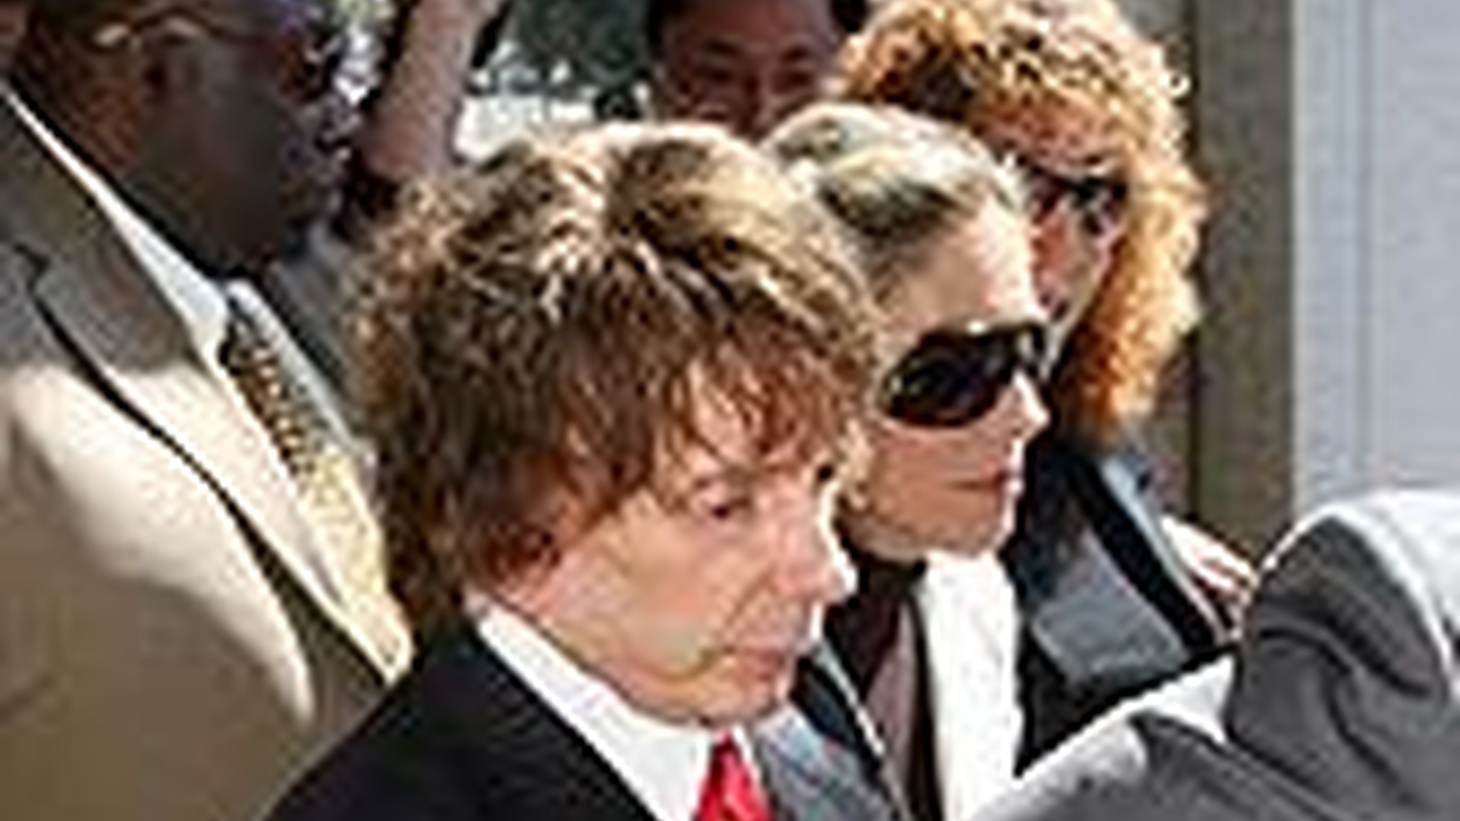 Doesn't the Phil Spector case just make you feel all warm and fuzzy inside about the justice system?...